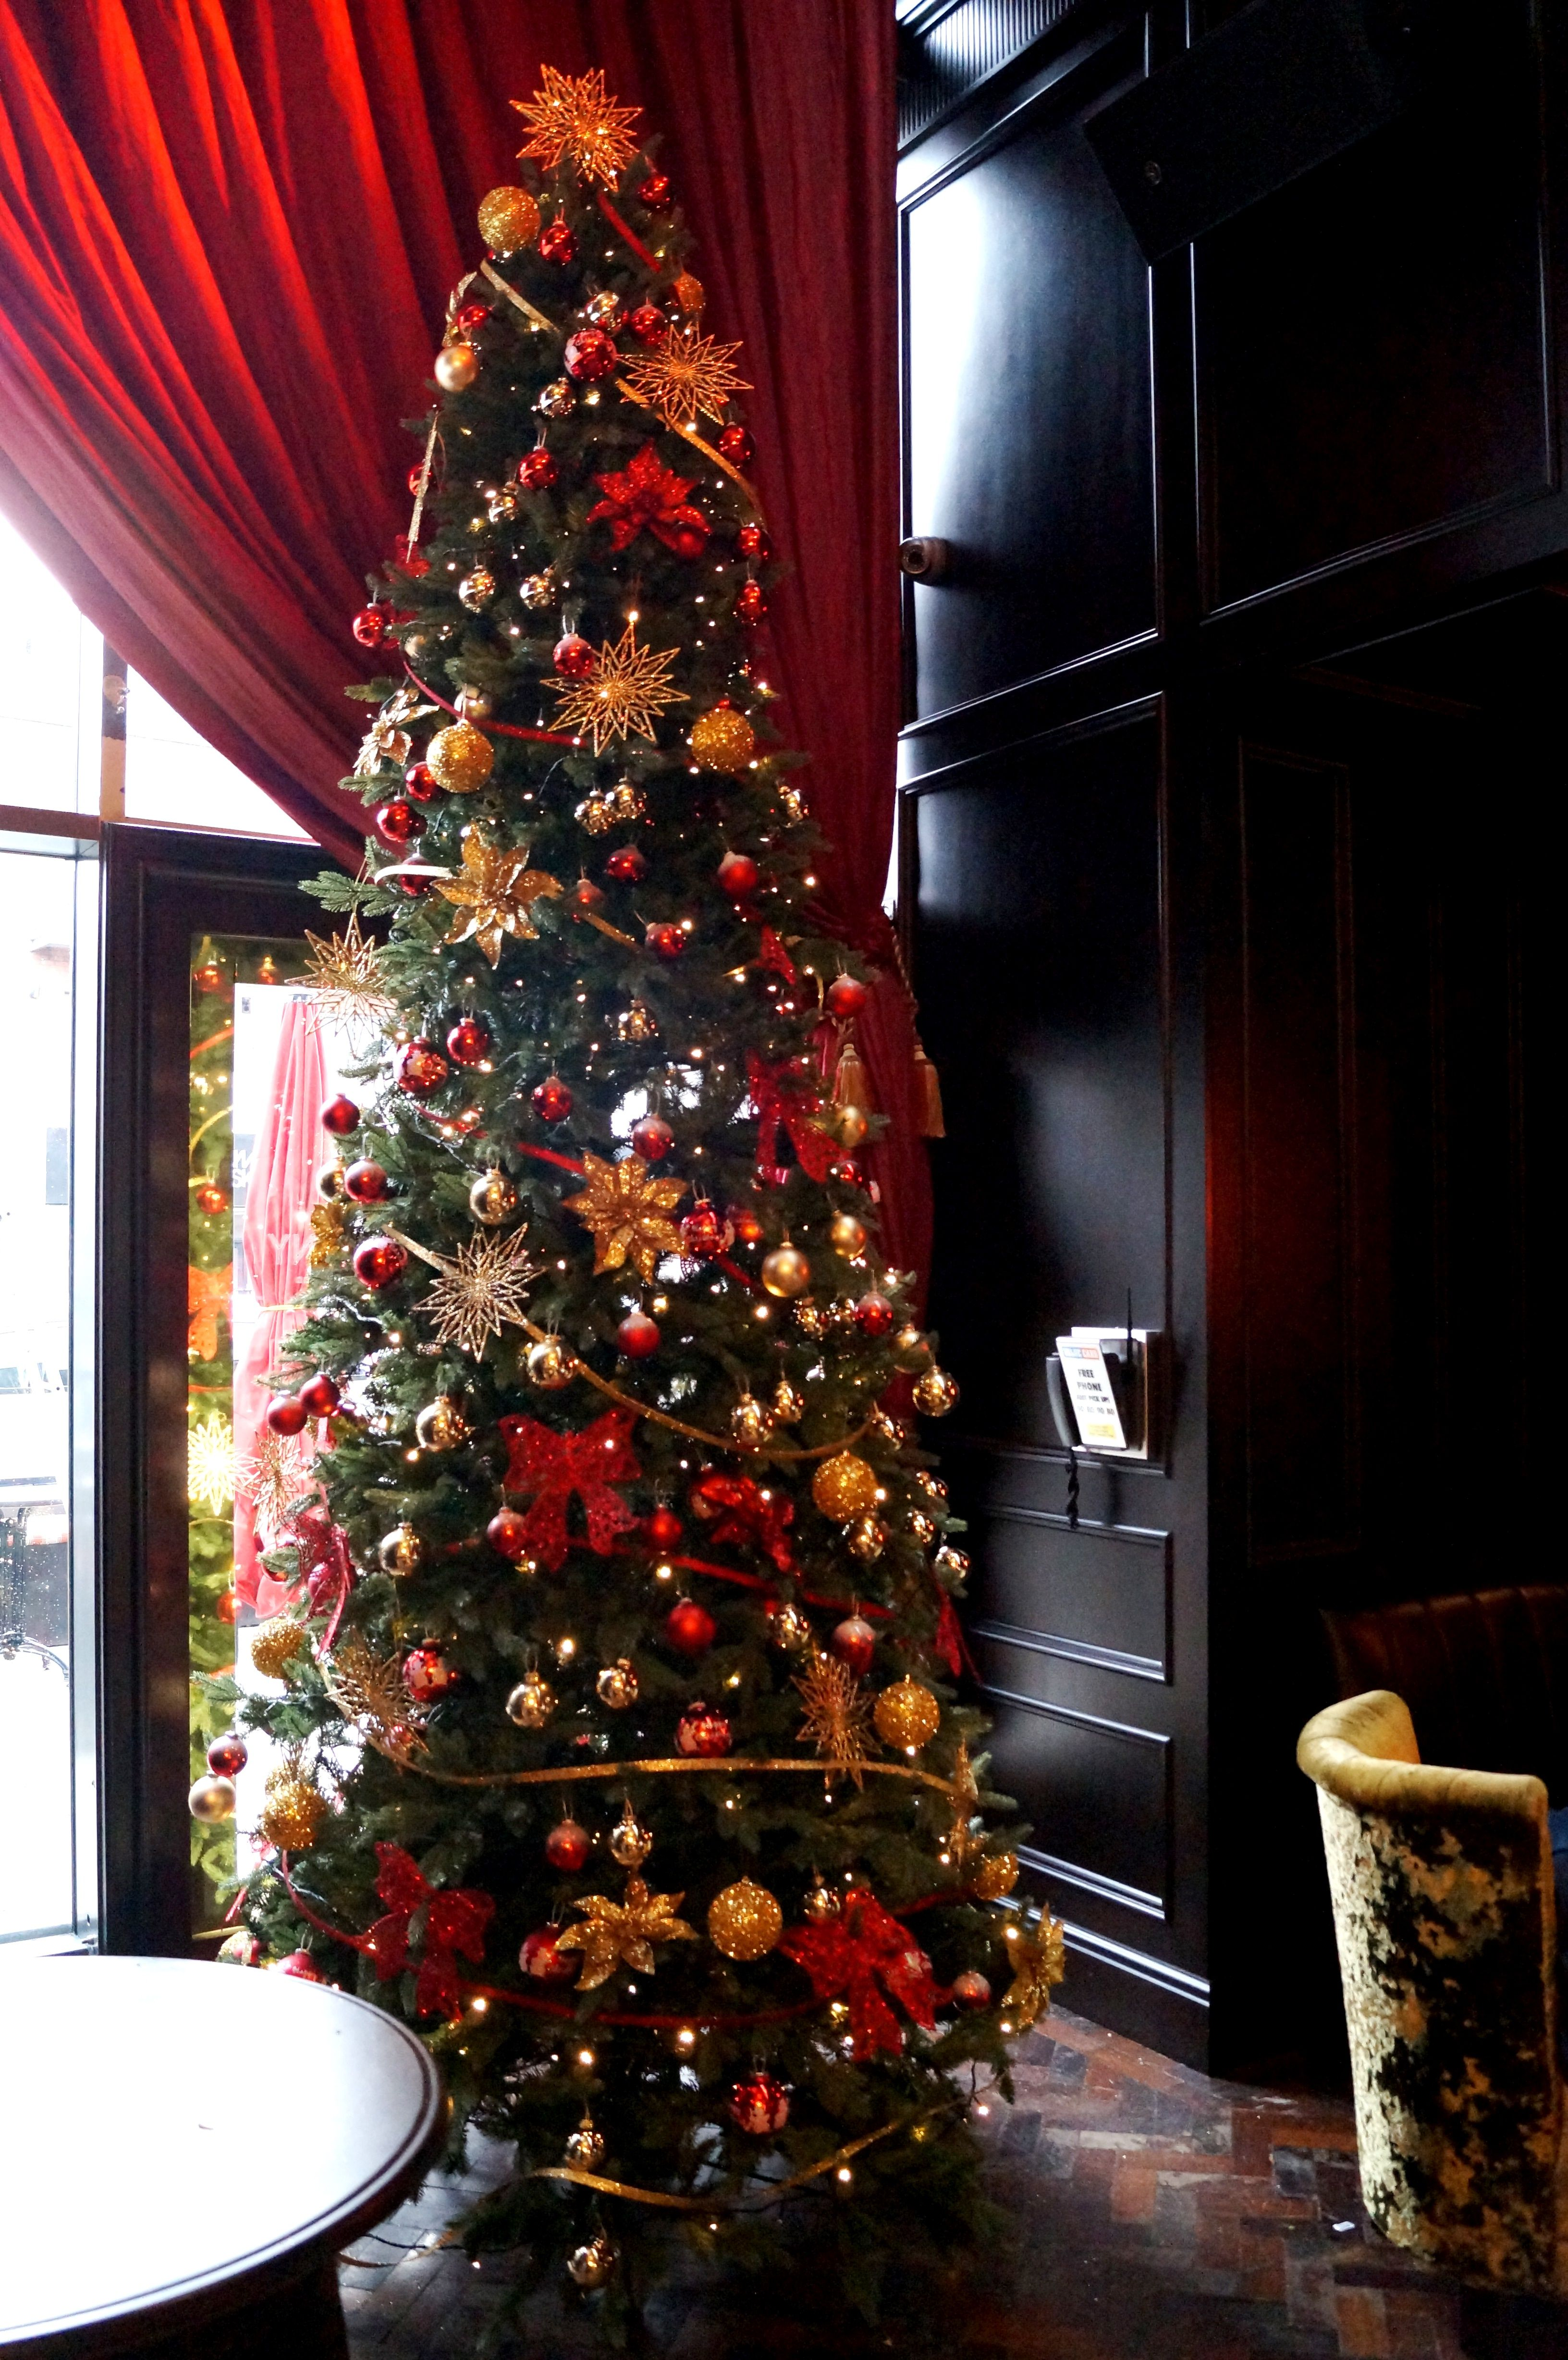 A 12ft luxury Christmas tree with red and gold decor and